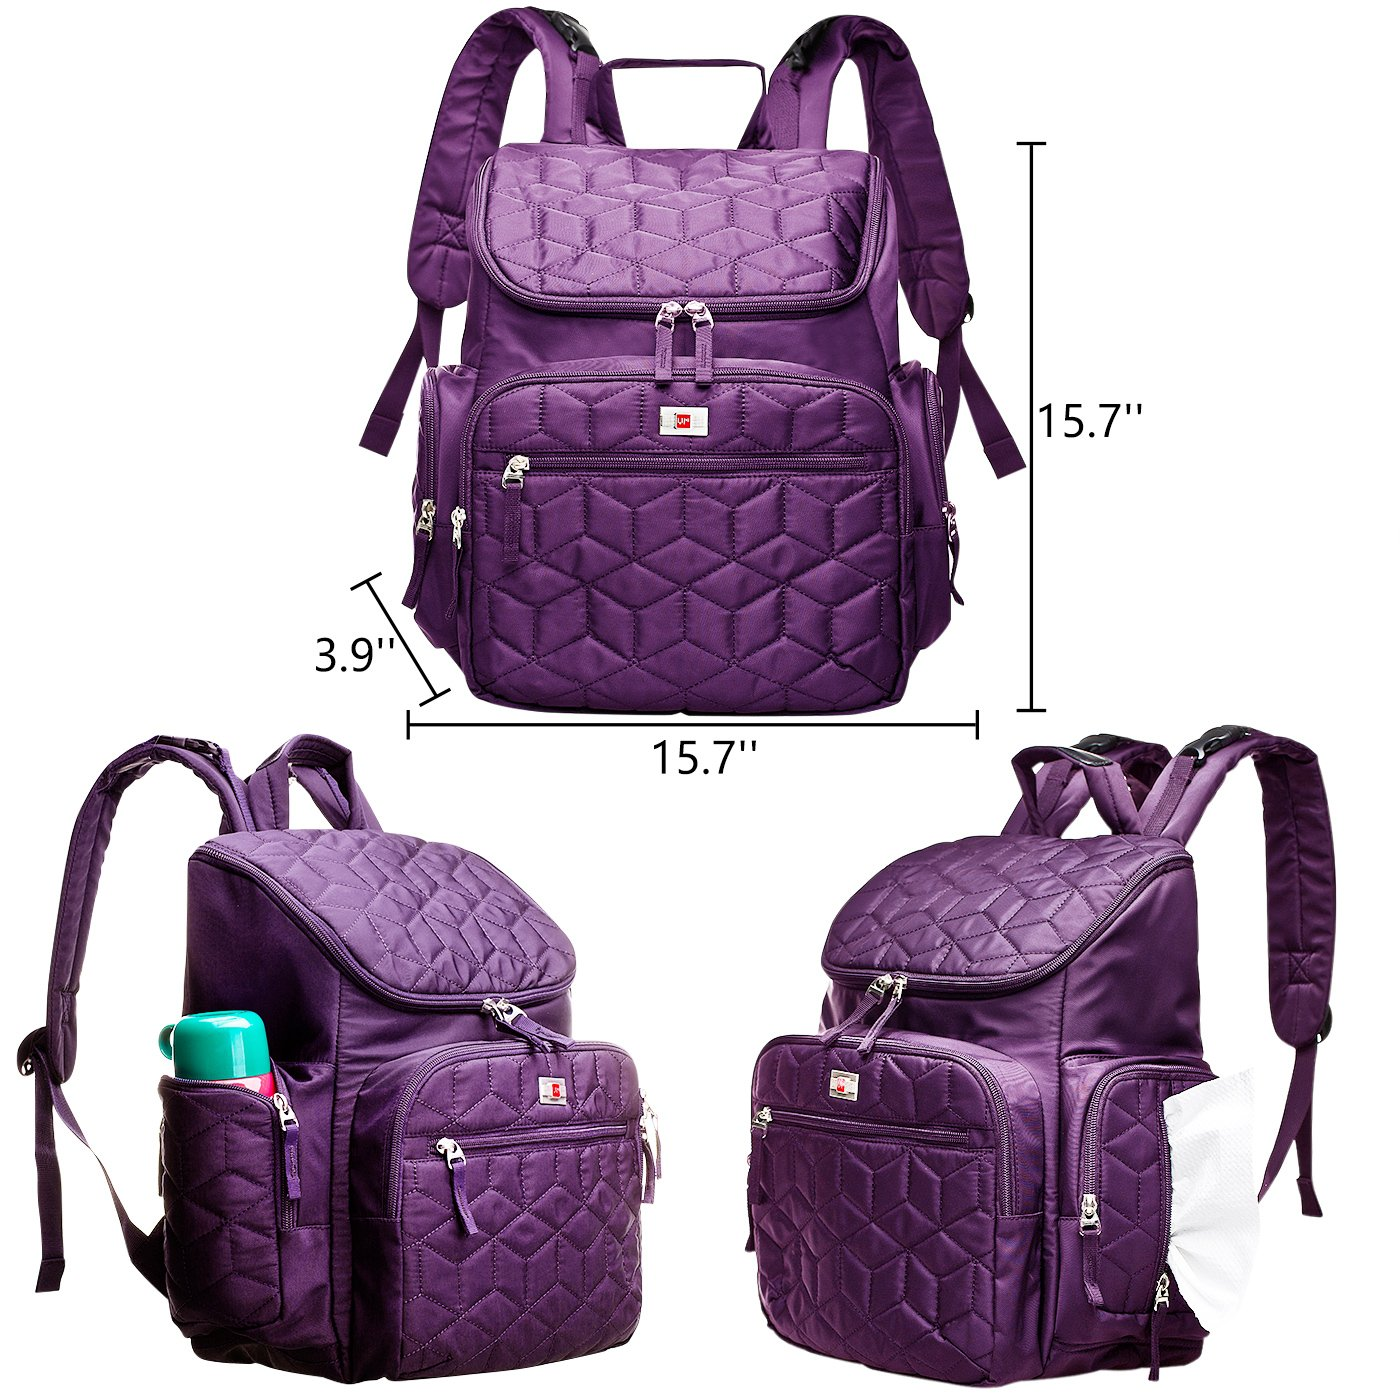 Amazon.com : AROHA Baby Backpack Diaper Bag for Women Men with Insulated Pouch and Changing Pad for Mommy and Dad (Purple) : Baby